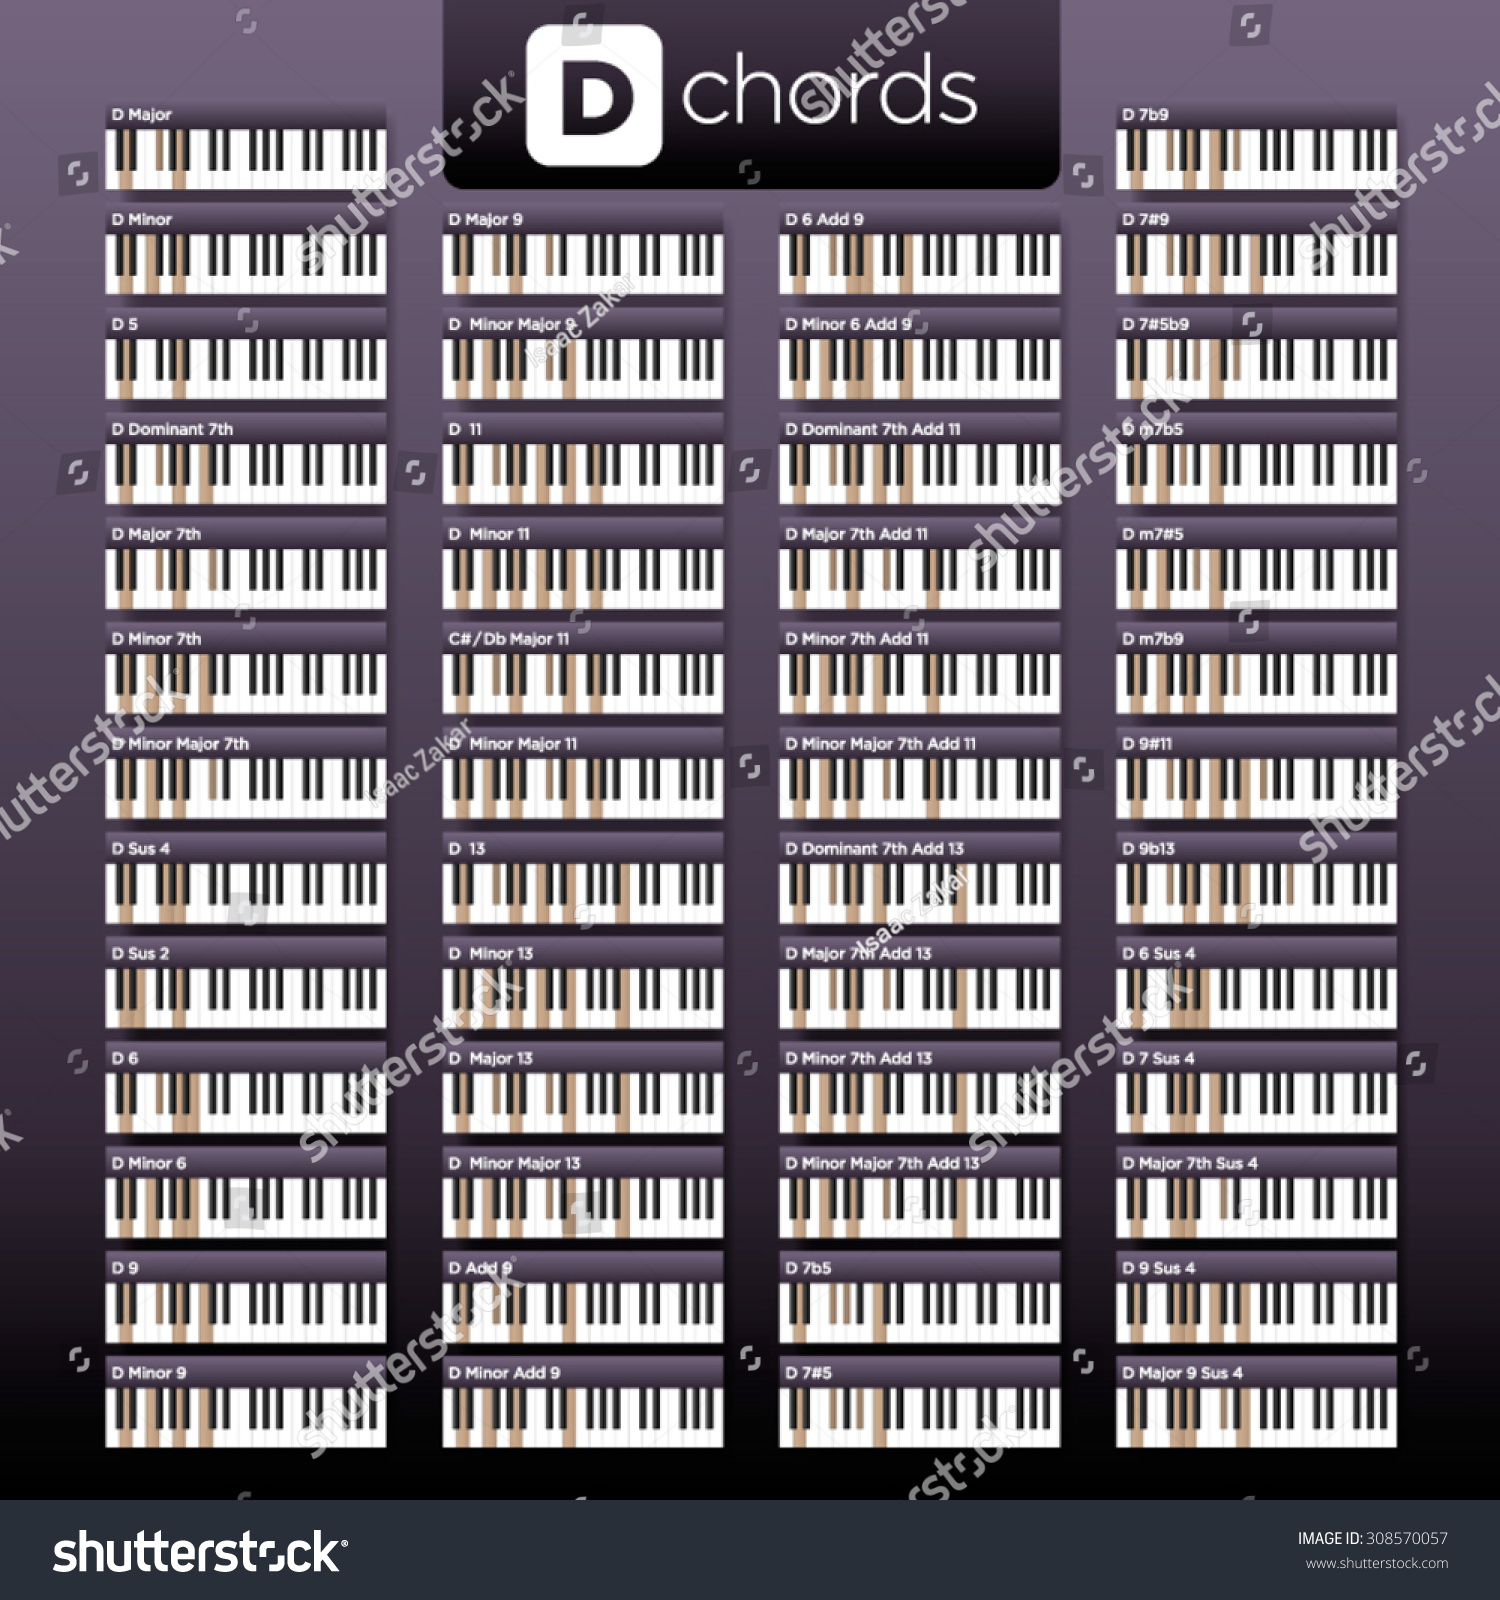 Vector Piano D Chords Visual Dictionary - 308570057 : Shutterstock